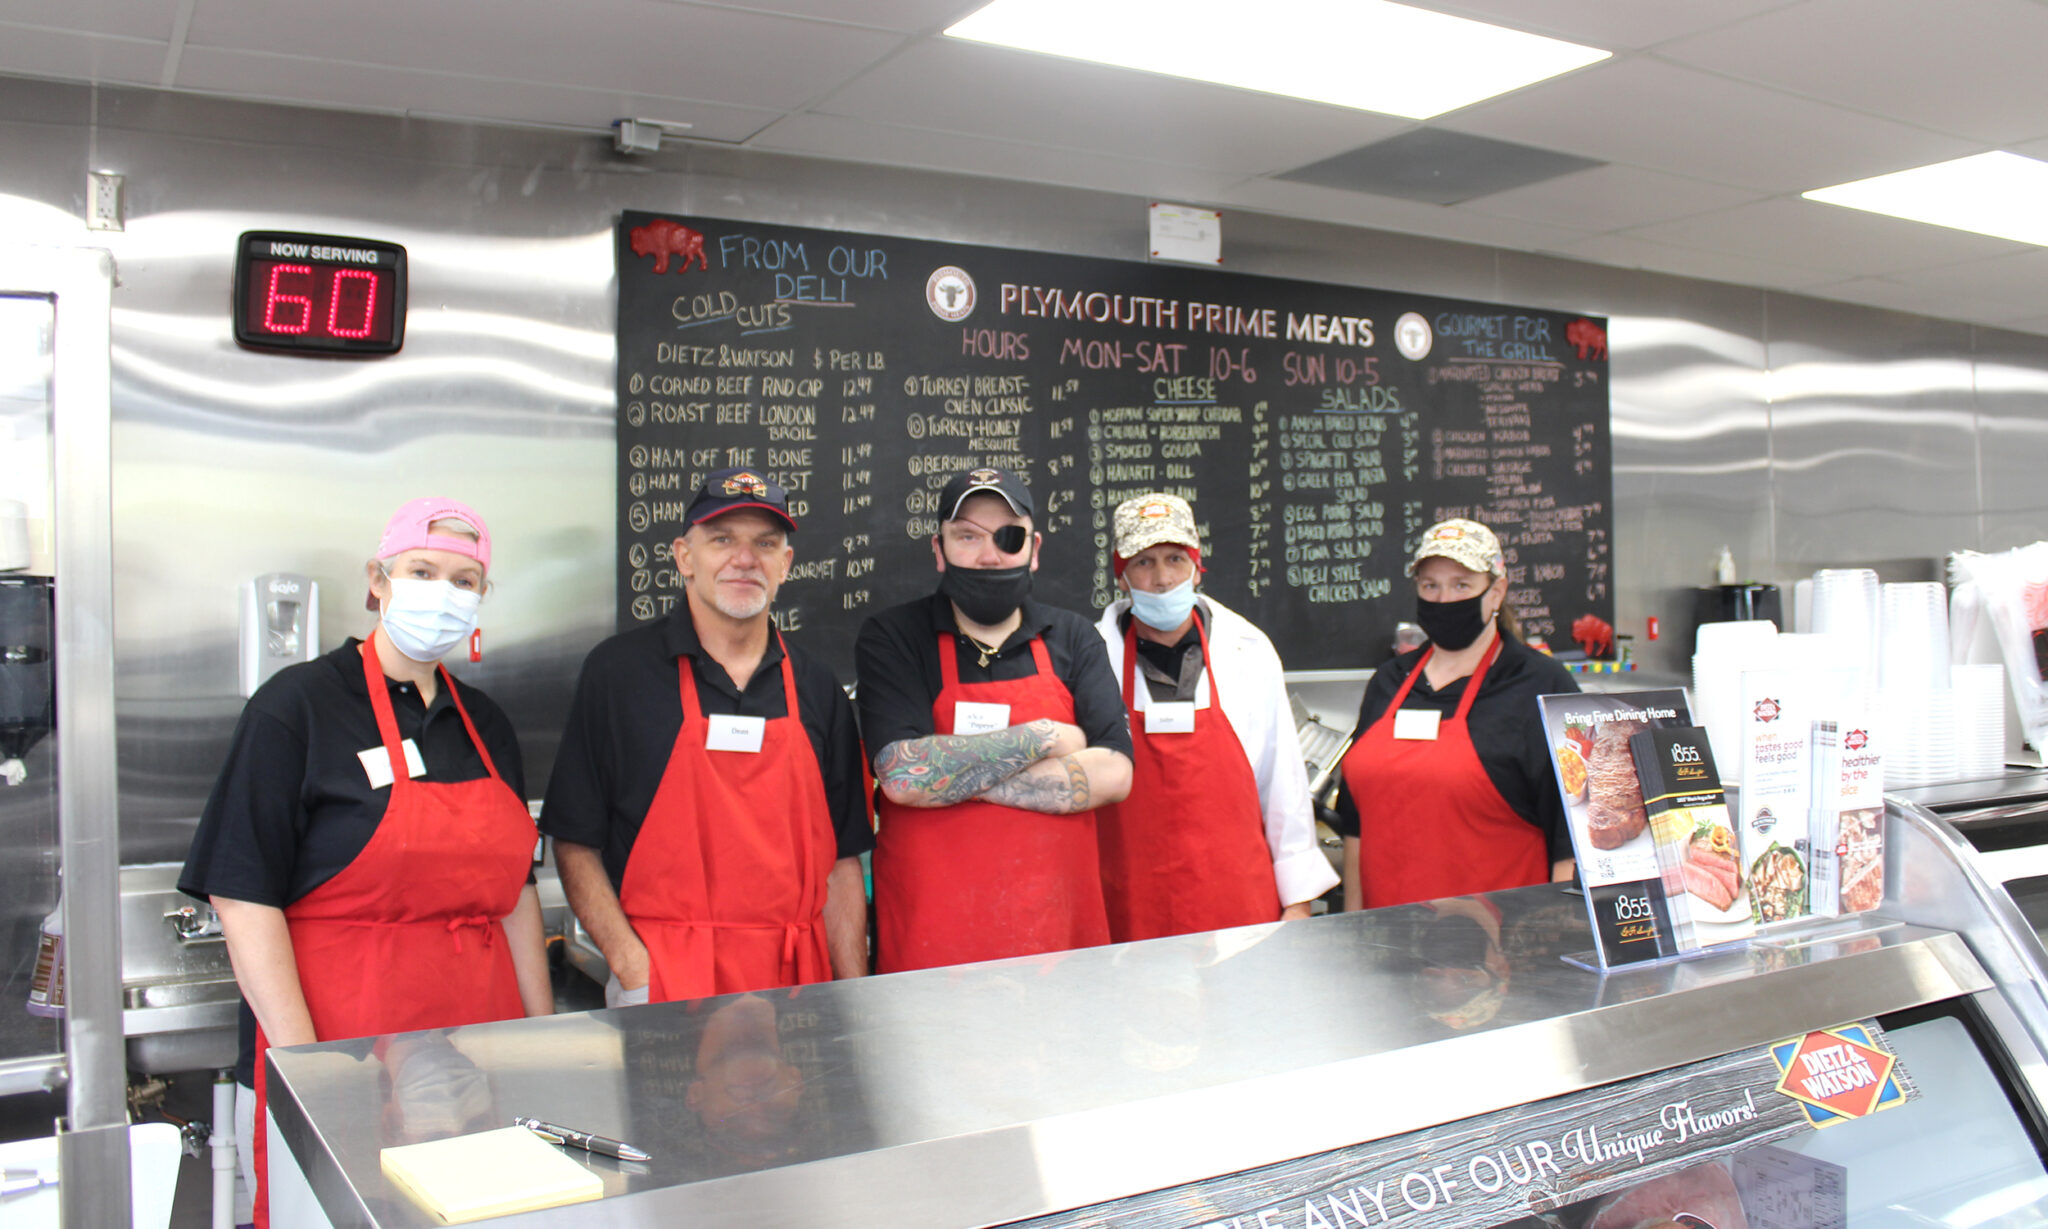 employees at plymouth prime meats